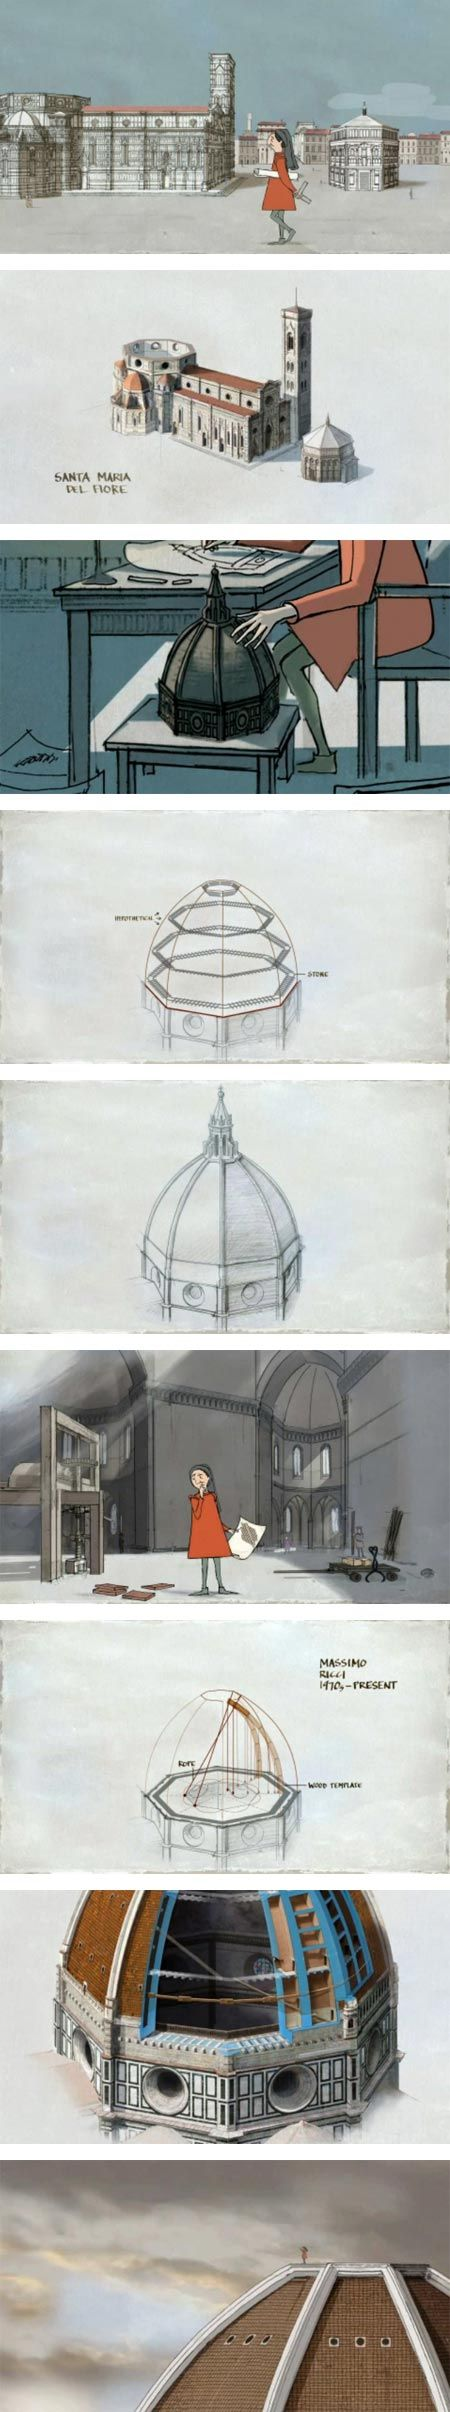 """Il Duomo: Daring Design is a short animation by Fernando Baptista. It serves as a brief introduction to the marvel of architecture, engineering and design that is Filippo Brunelleschi's dome for the cathedral of Santa Maria del Fiore in Florence."""